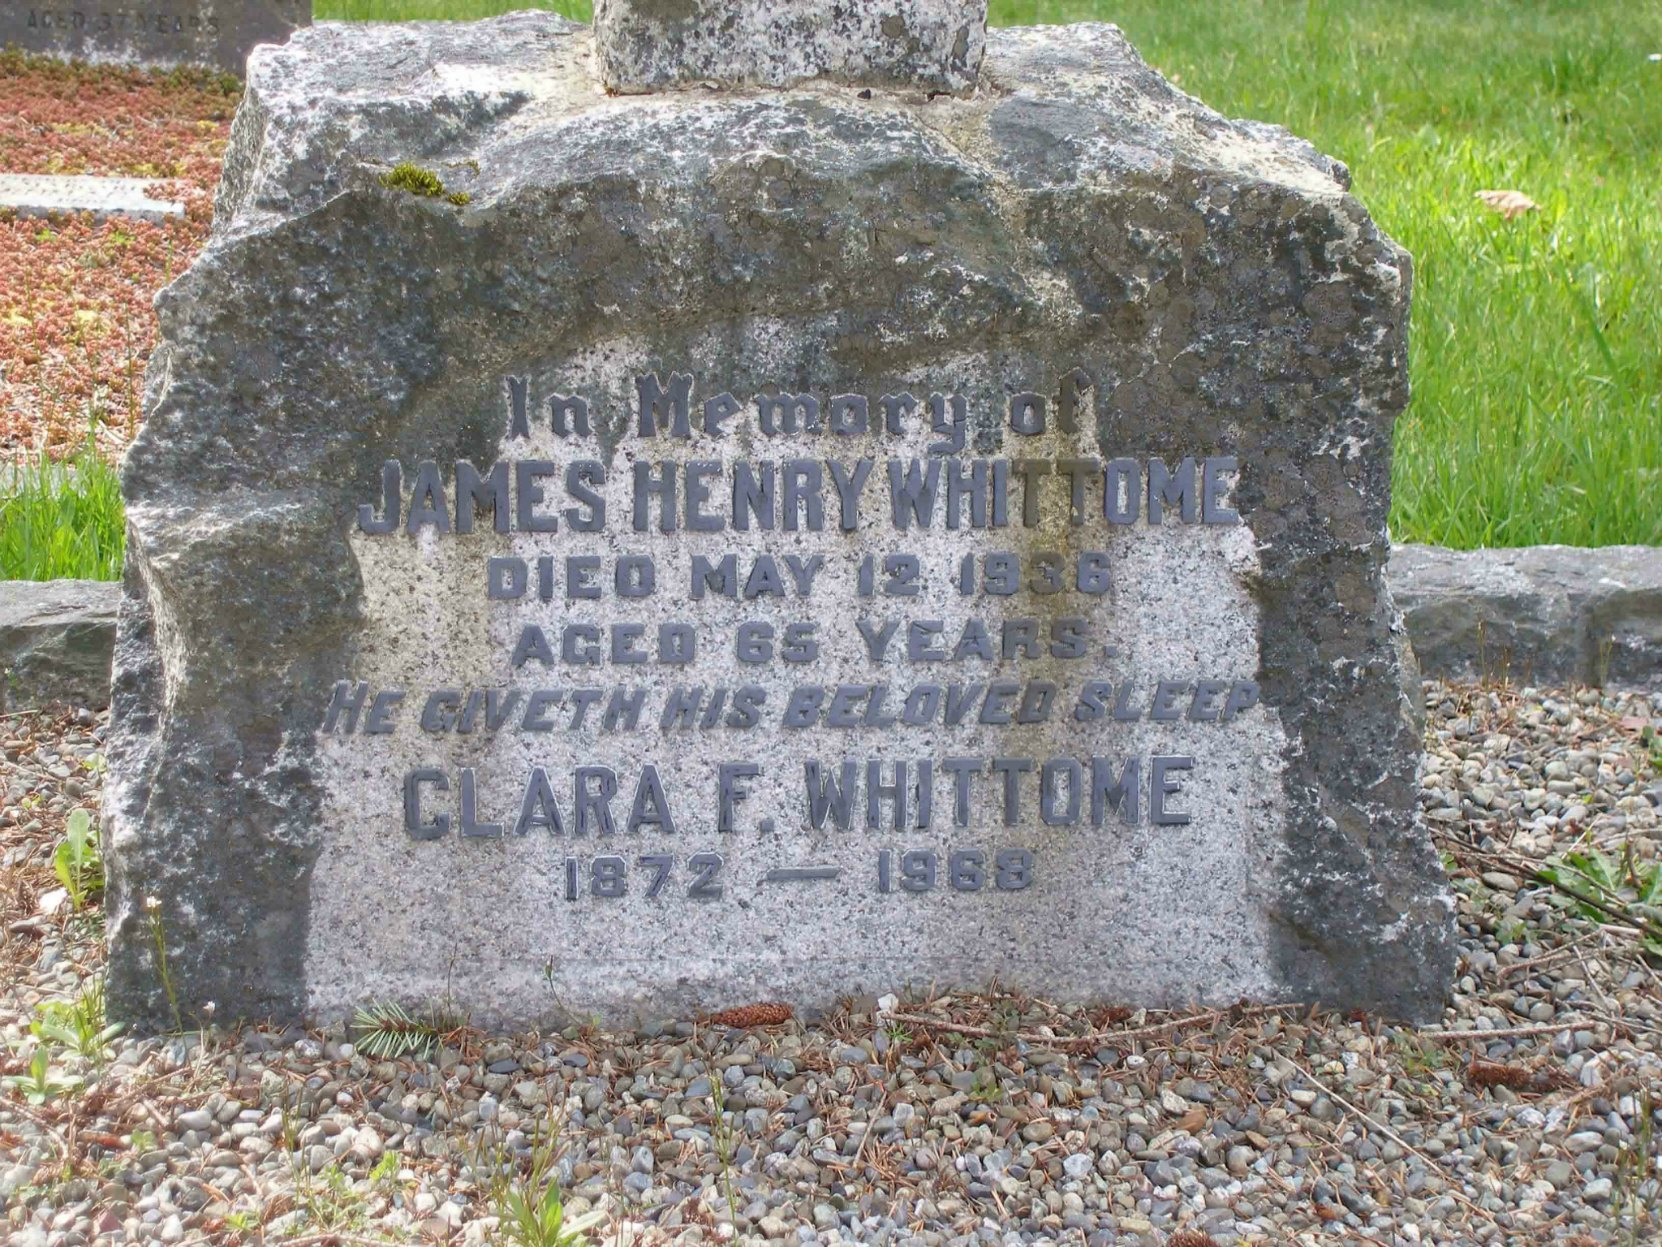 James Henry Whittome grave inscription, St. Peter's Quamichan cemetery